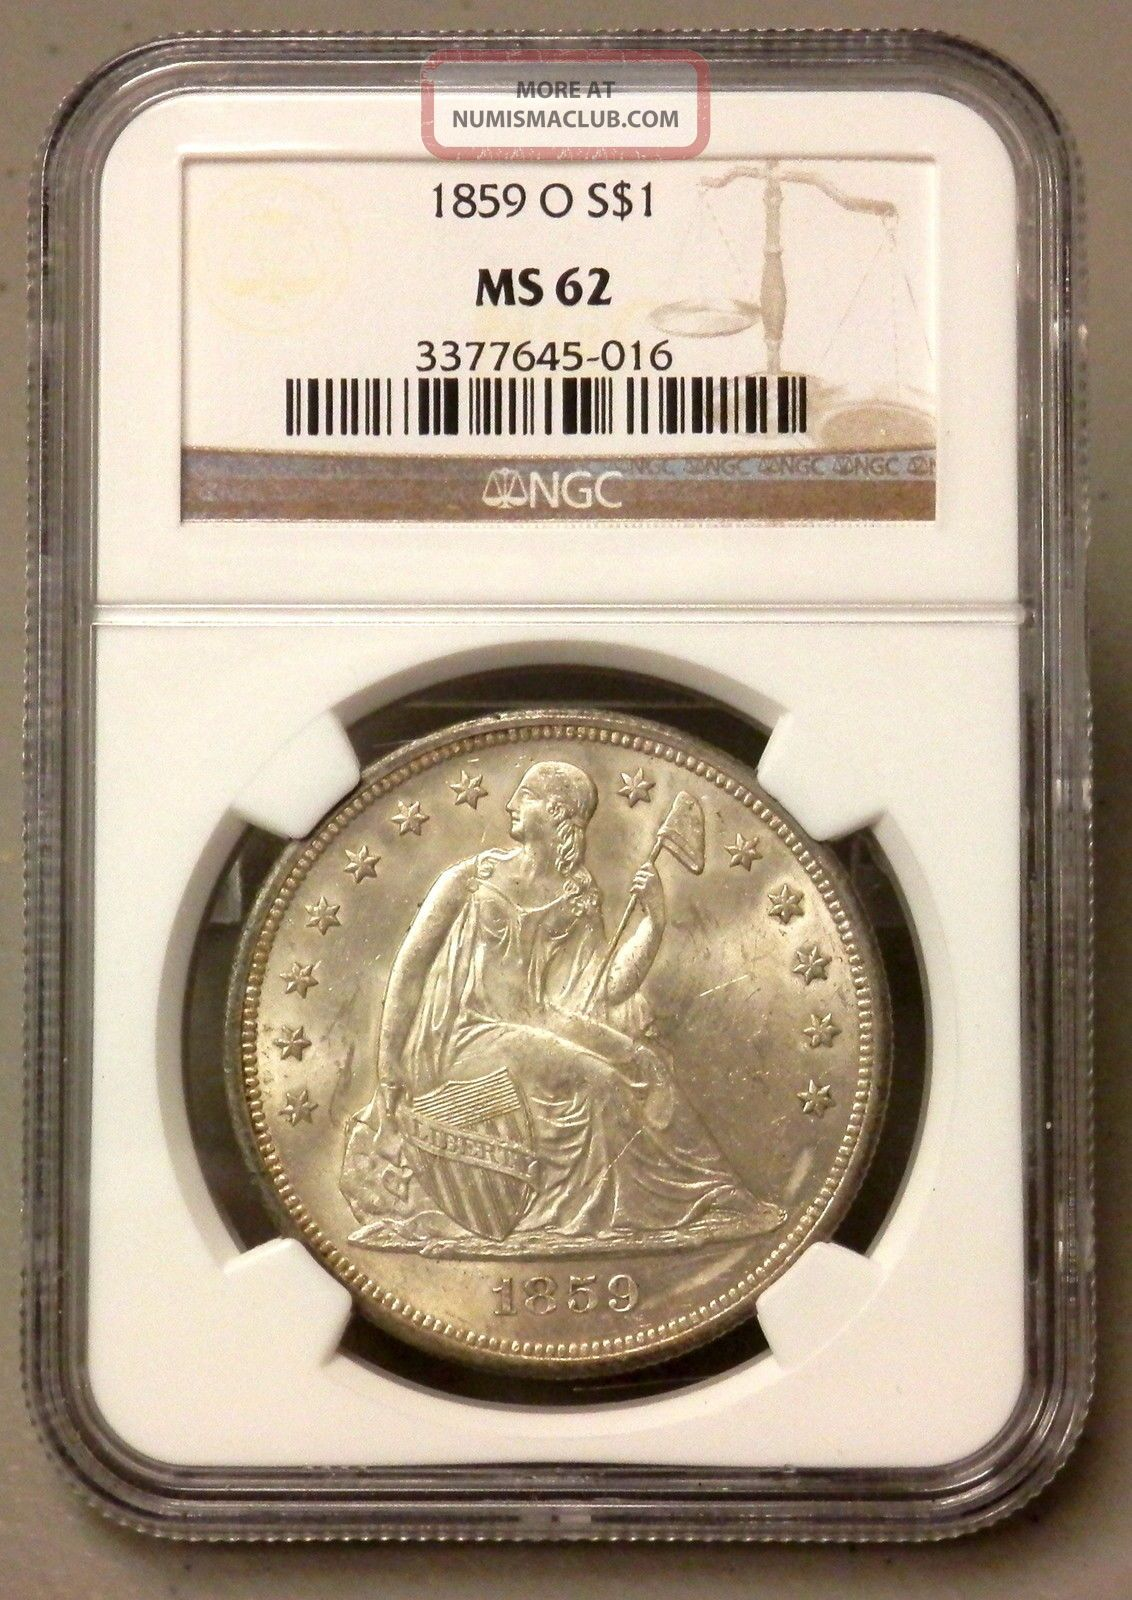 1859 O United States Seated Liberty Silver Dollar - Ngc Graded Ms62 Dollars photo